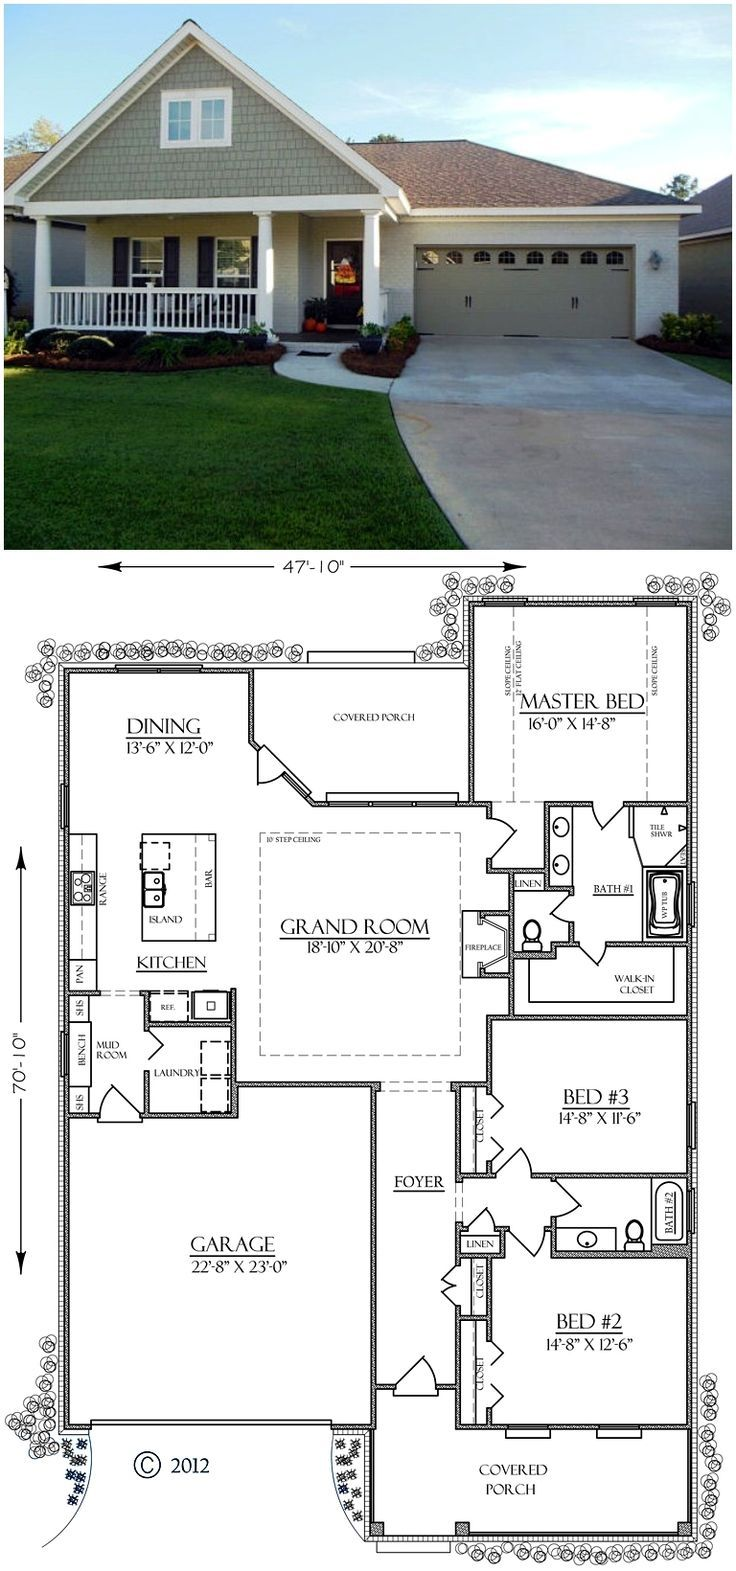 25 best ideas about duplex house plans on pinterest for Best duplex plans